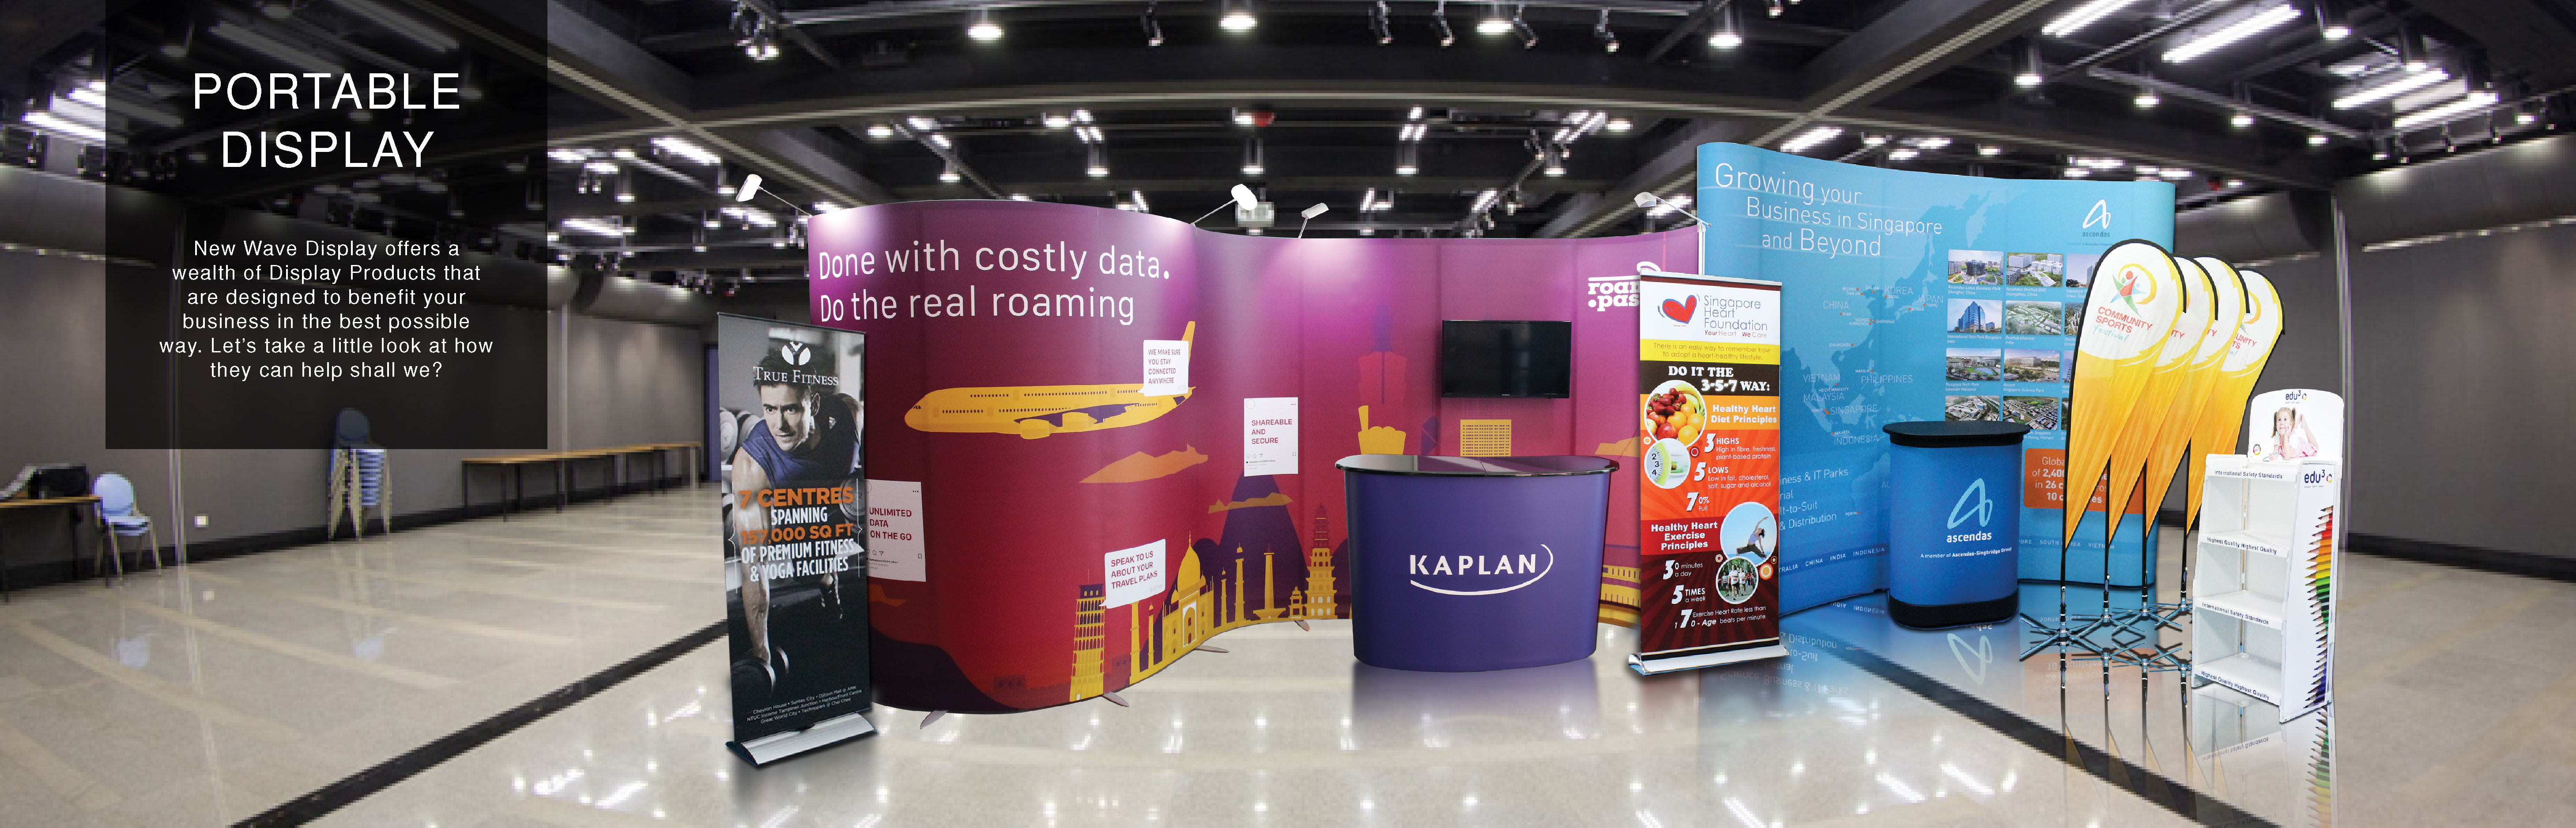 Marketing Exhibition Stand Alone : How to get the most out of exhibition booths and trade shows